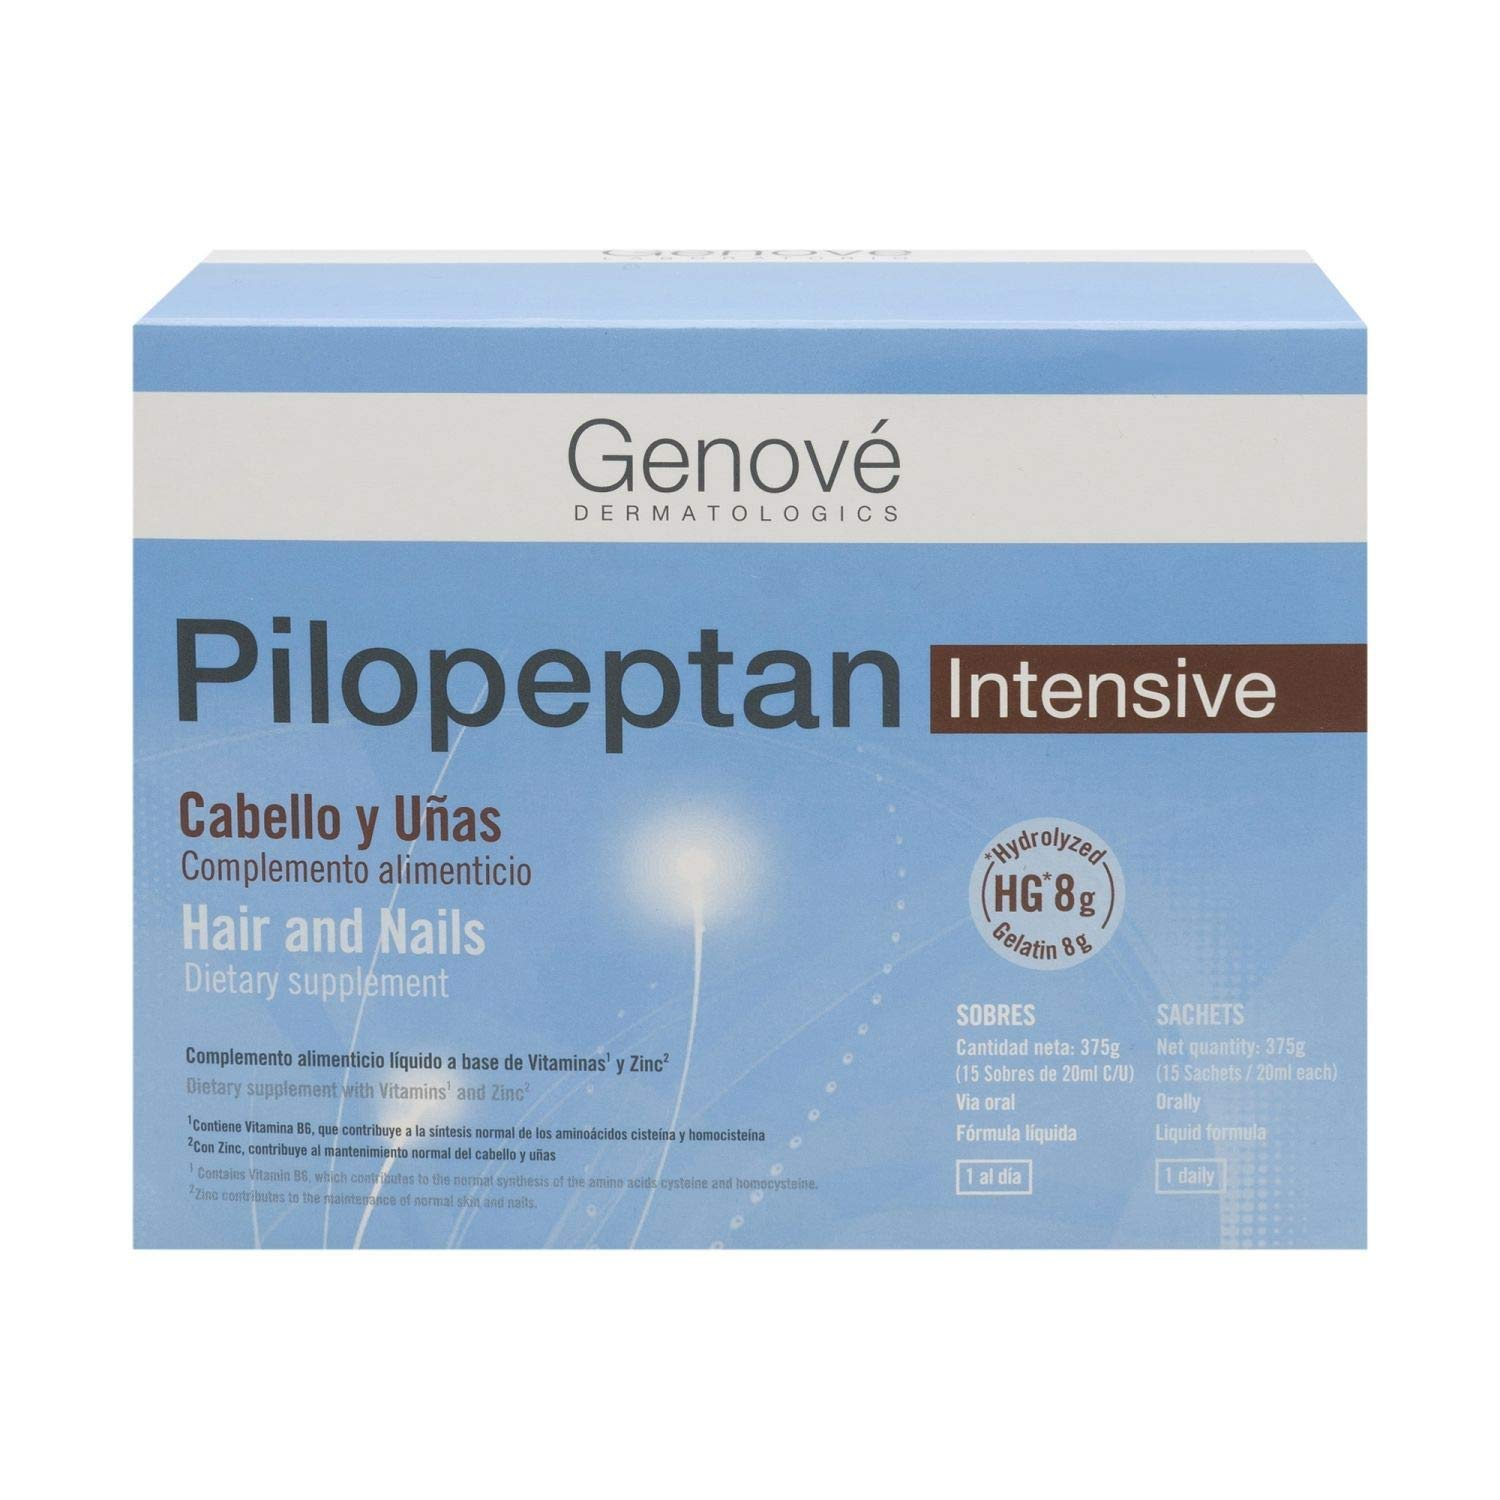 Amazon.com : Genové Pilopeptan Intense Hair And Nails 15 Sachets - Anti Hair Loss Treatment - Hair Regrowth Treatment - Collagen for Your Nails : Beauty